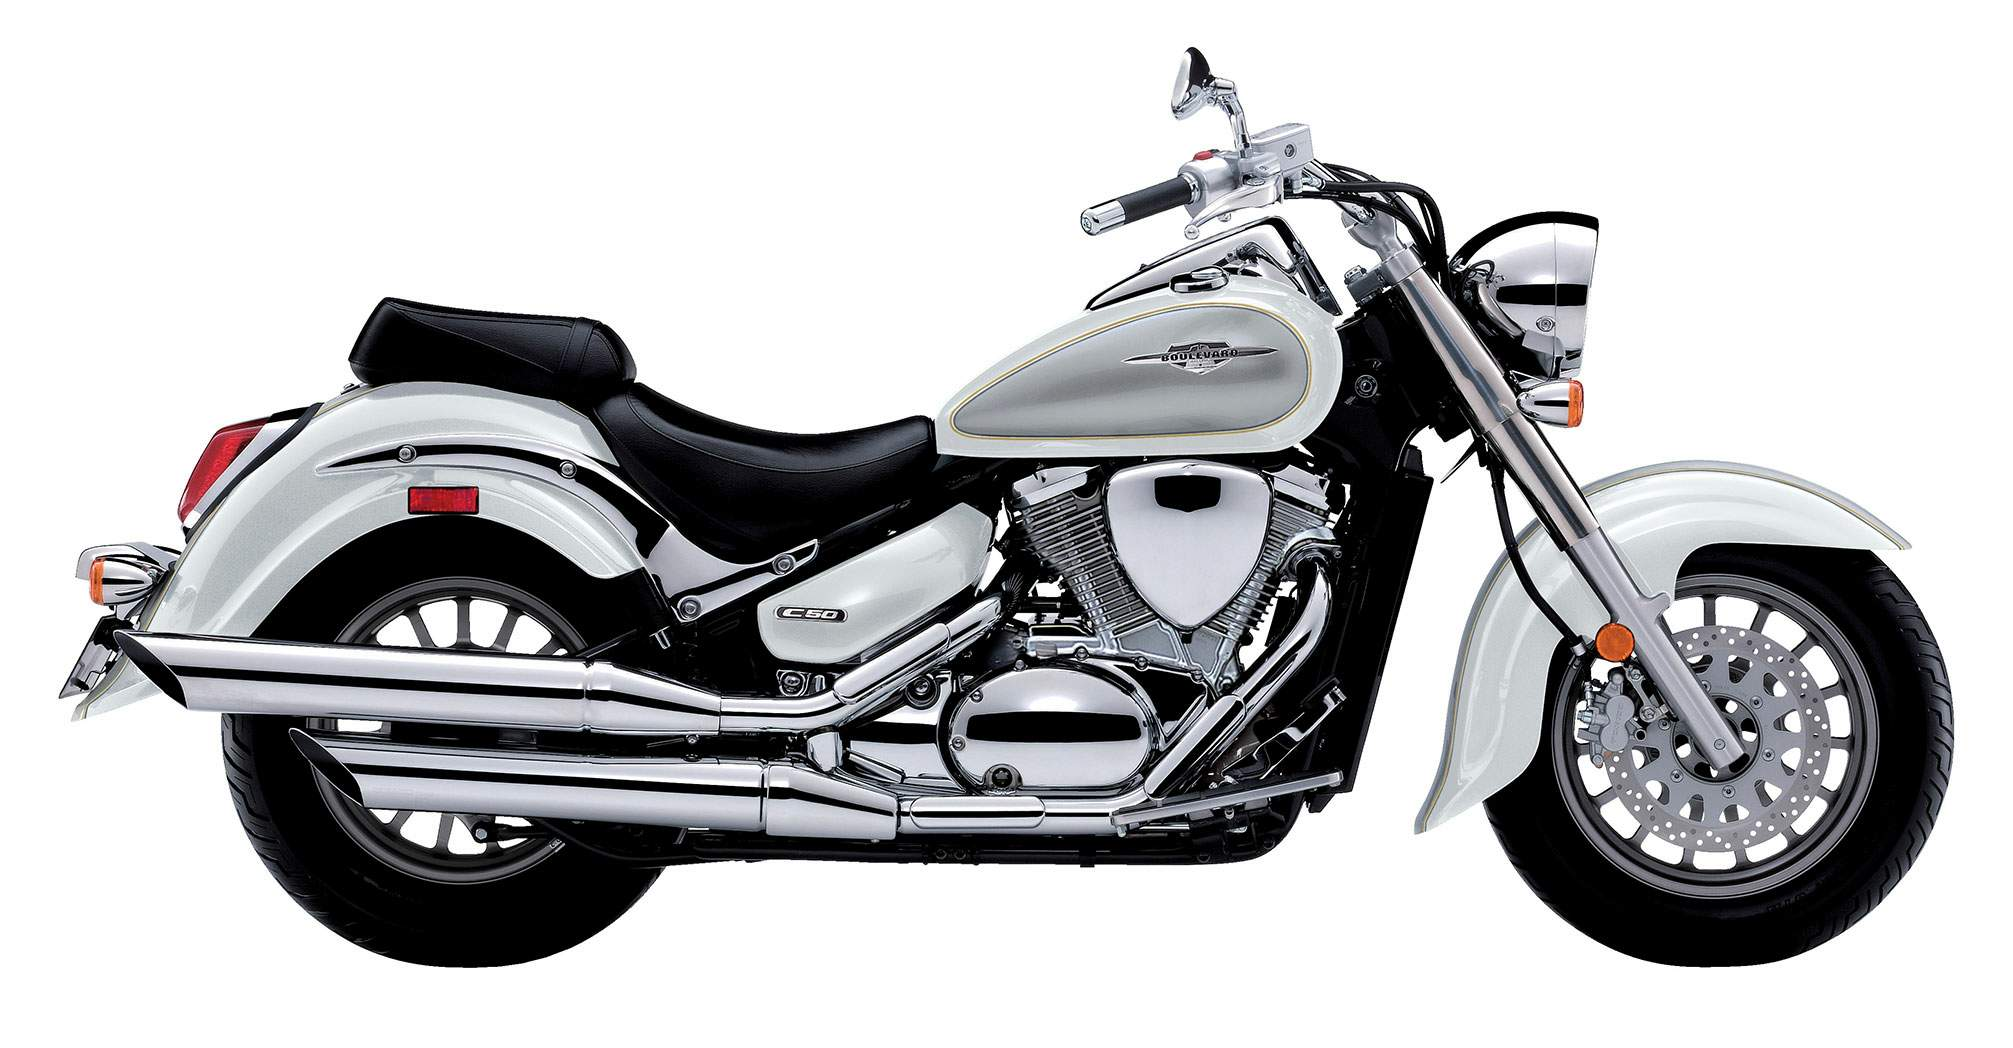 Pin 2006 Suzuki C50t Boulevard 800 4 595 on Pinterest